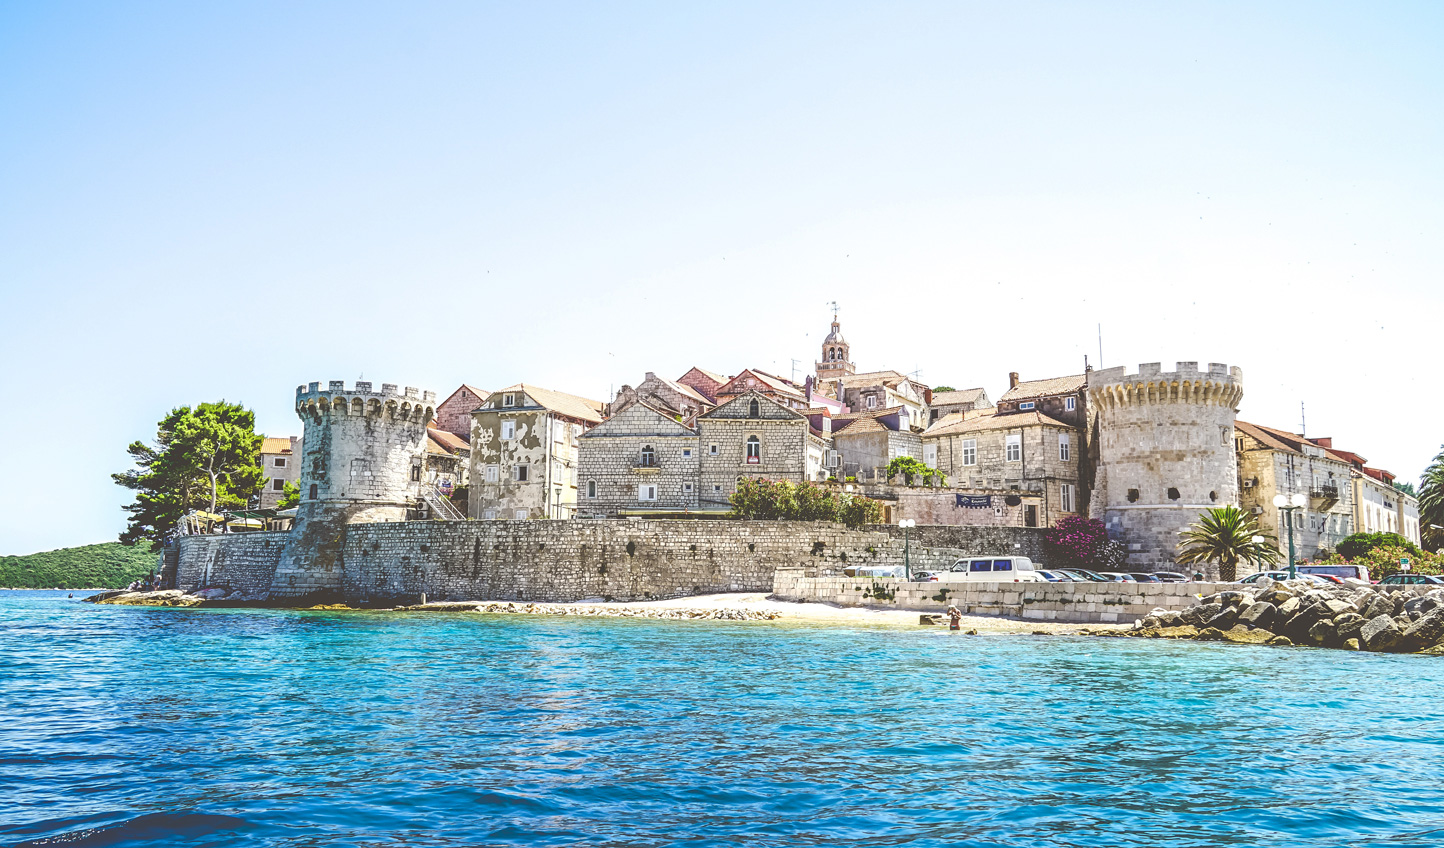 Soak up old world charm in Korcula